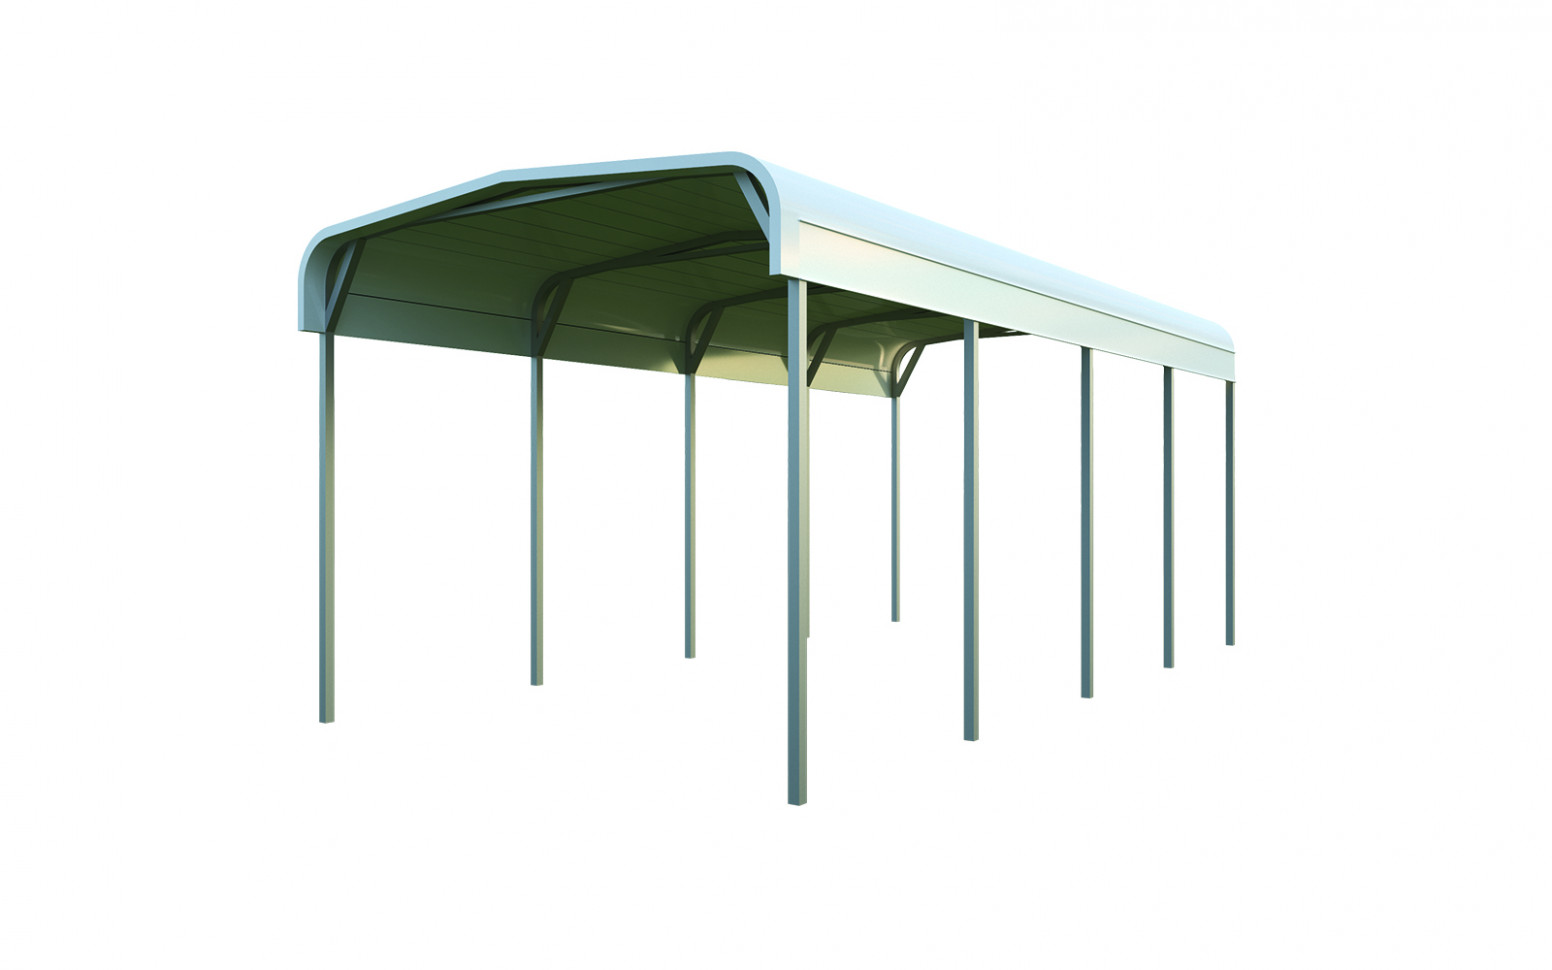 7x7 Metal Carport: Single Car Carport | General Steel Shop Carport Roof Types